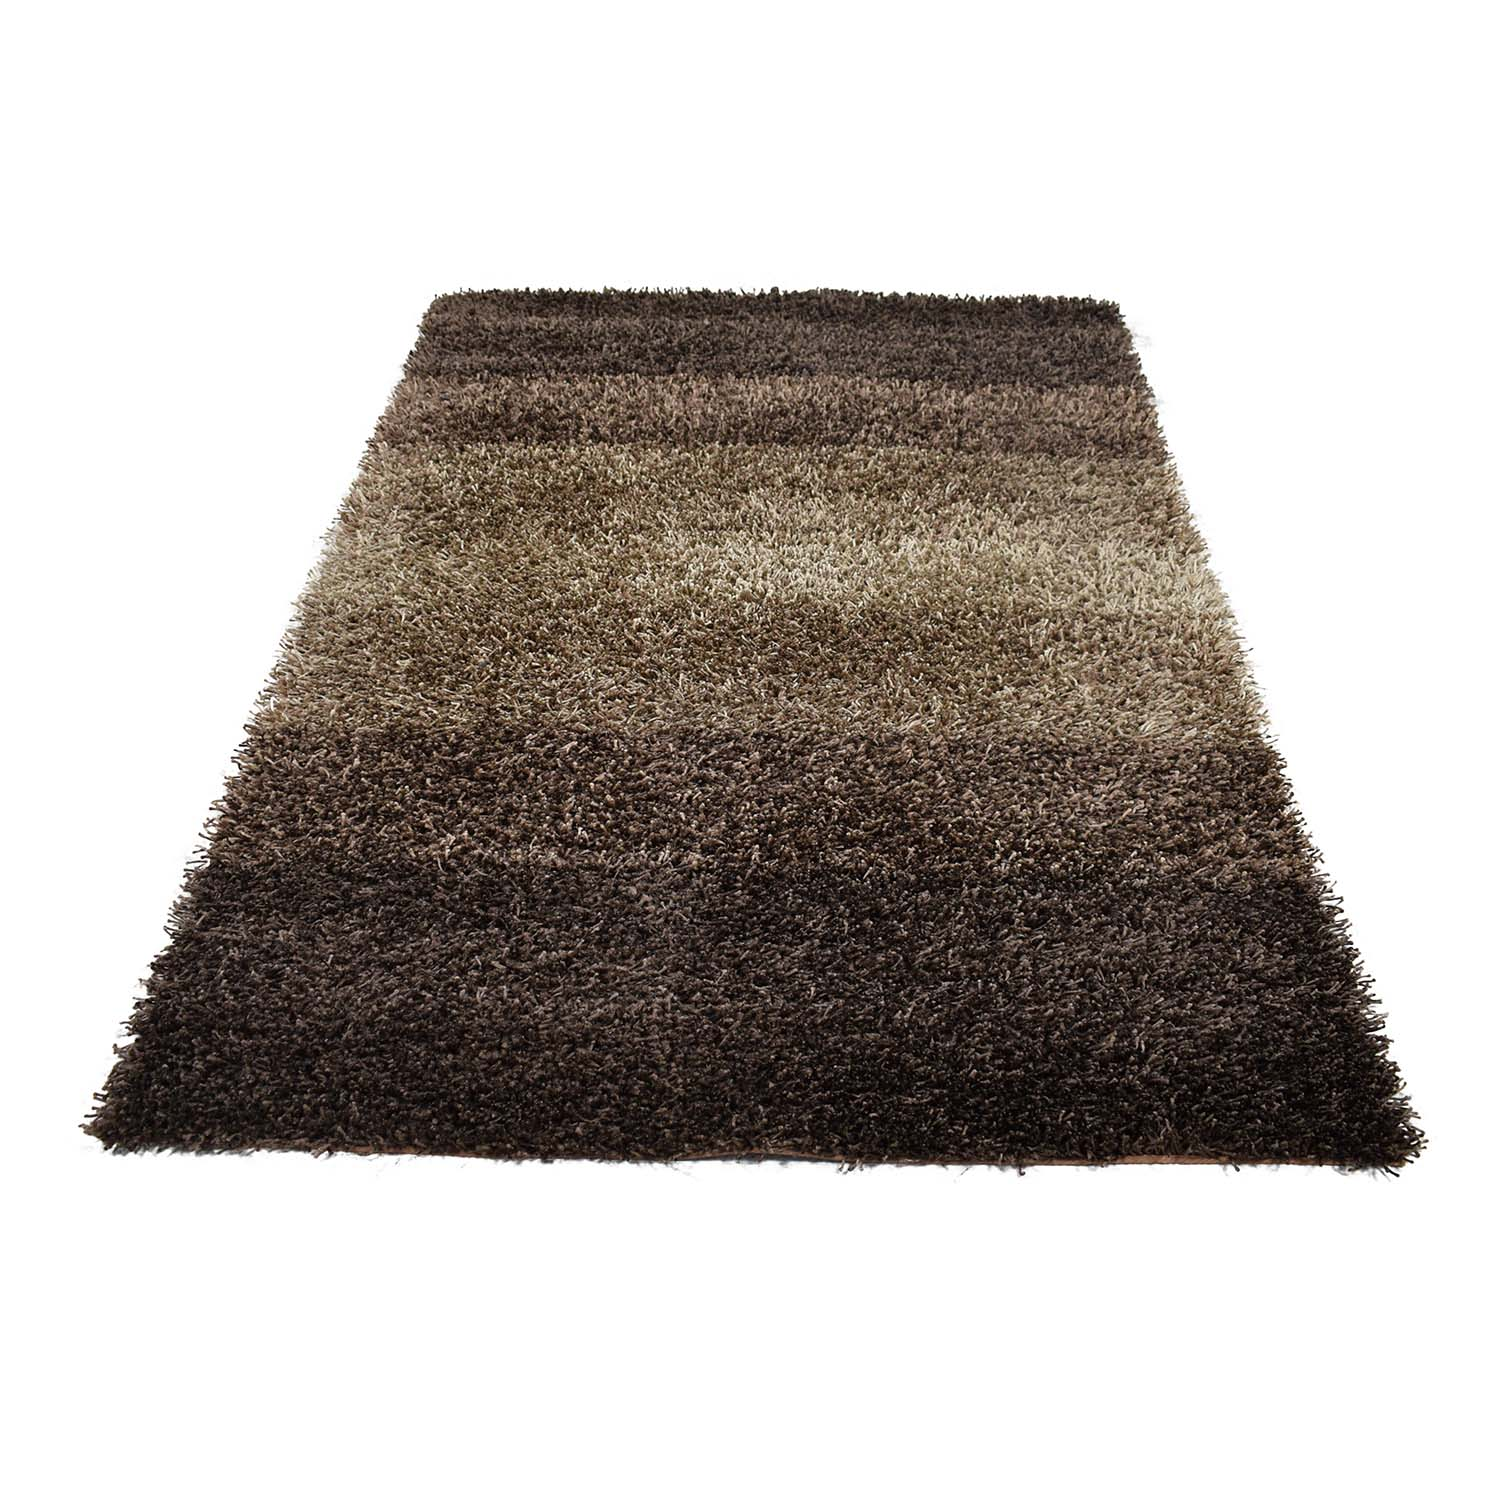 Spectrum Spectrum Brown Shag Rug nyc